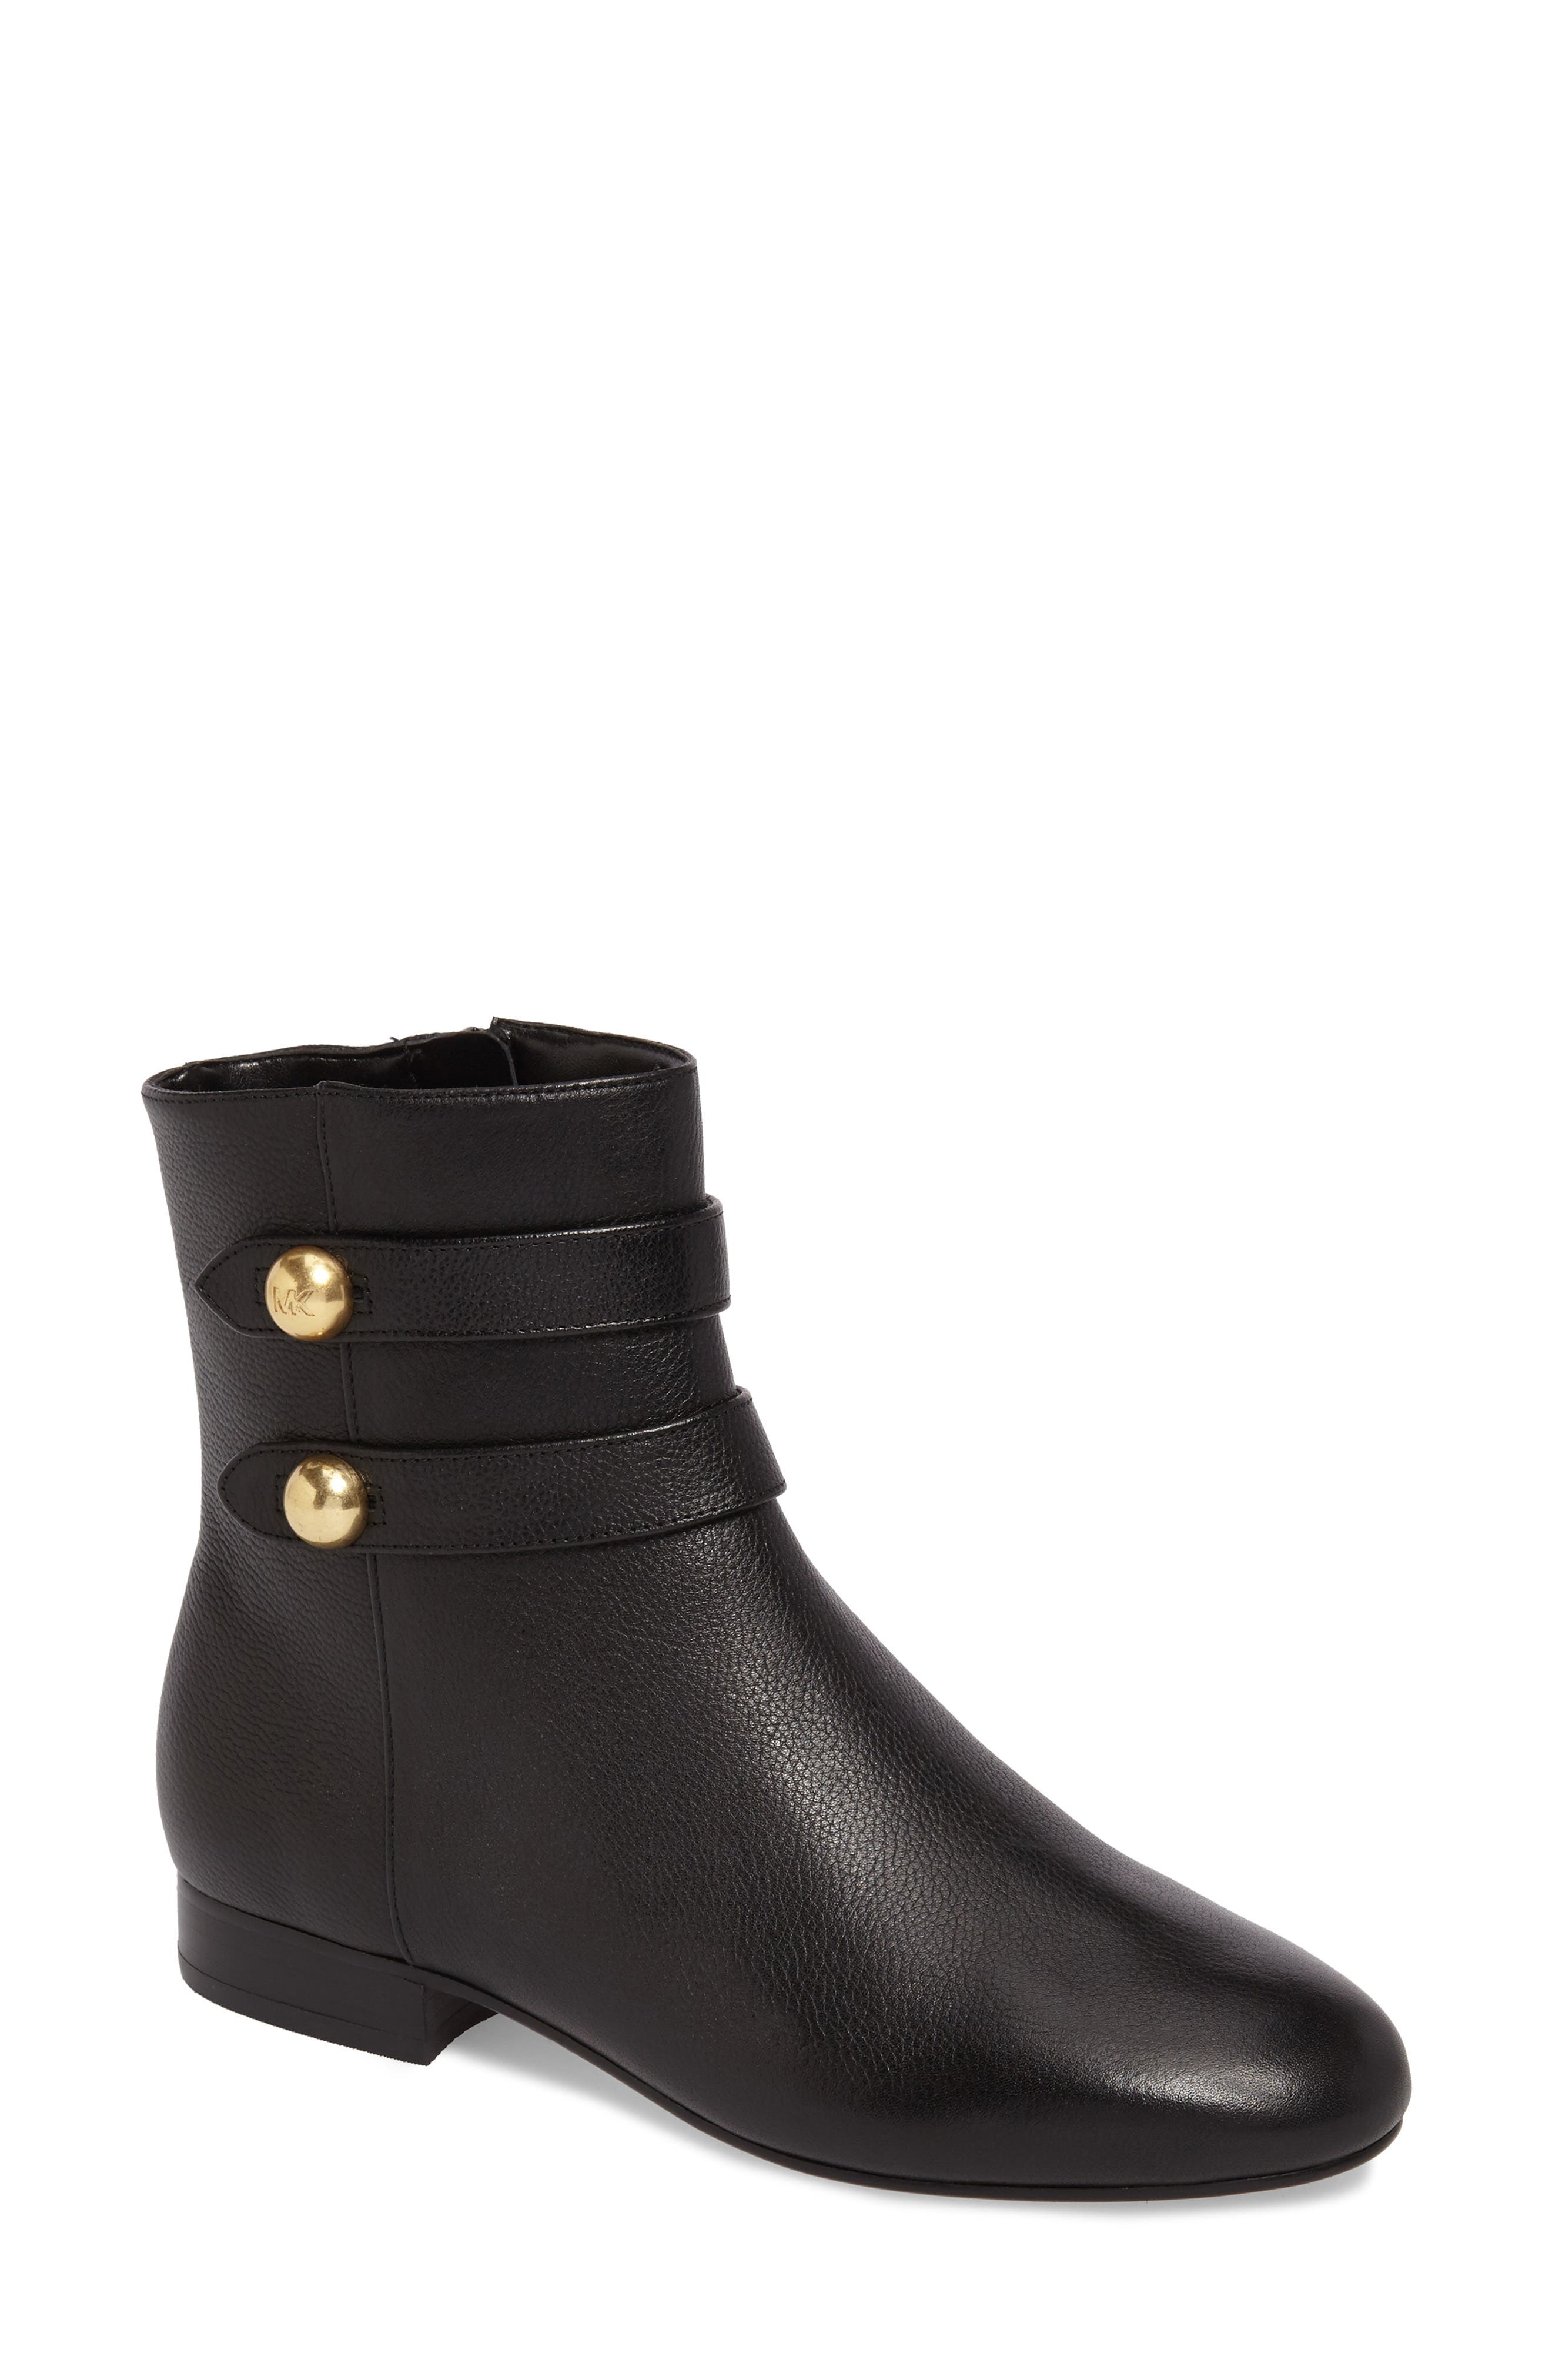 Maisie Bootie,                         Main,                         color, Black Tumbled Leather